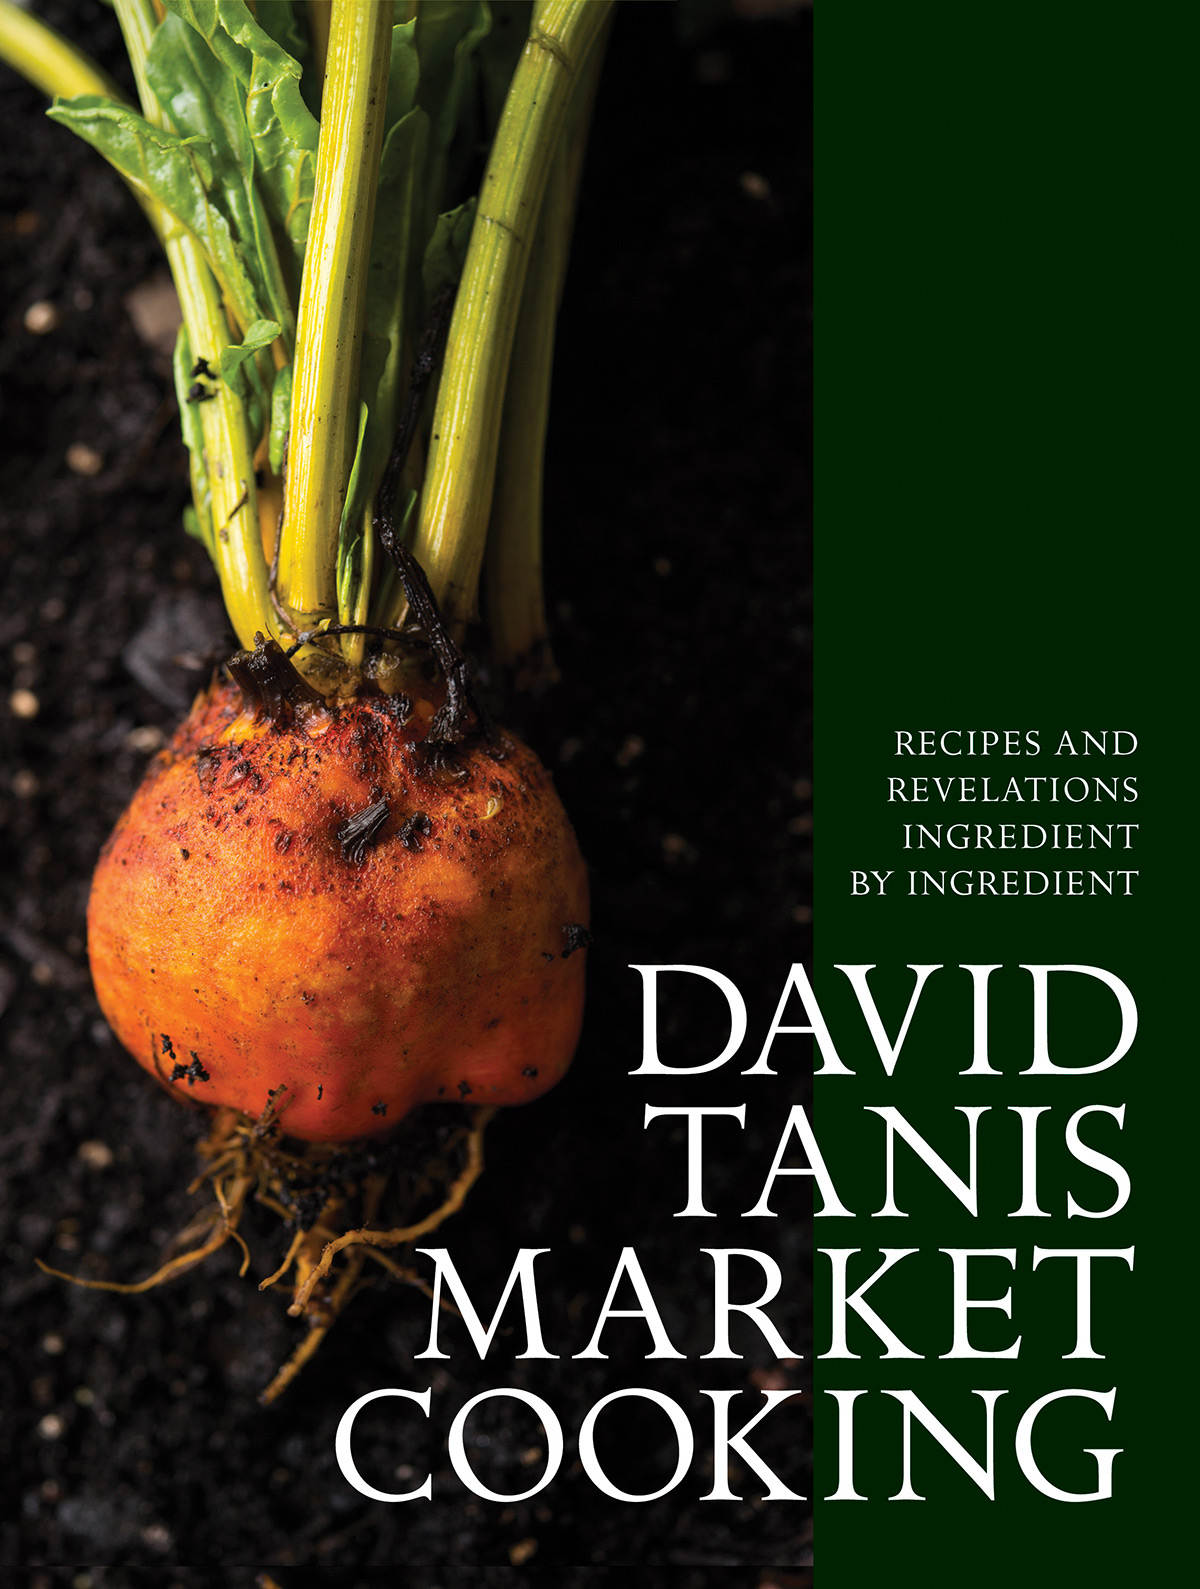 Excerpted from David Tanis Market Cooking by David Tanis (Artisan Books). Copyright © 2017. Photographs by Evan Sung.